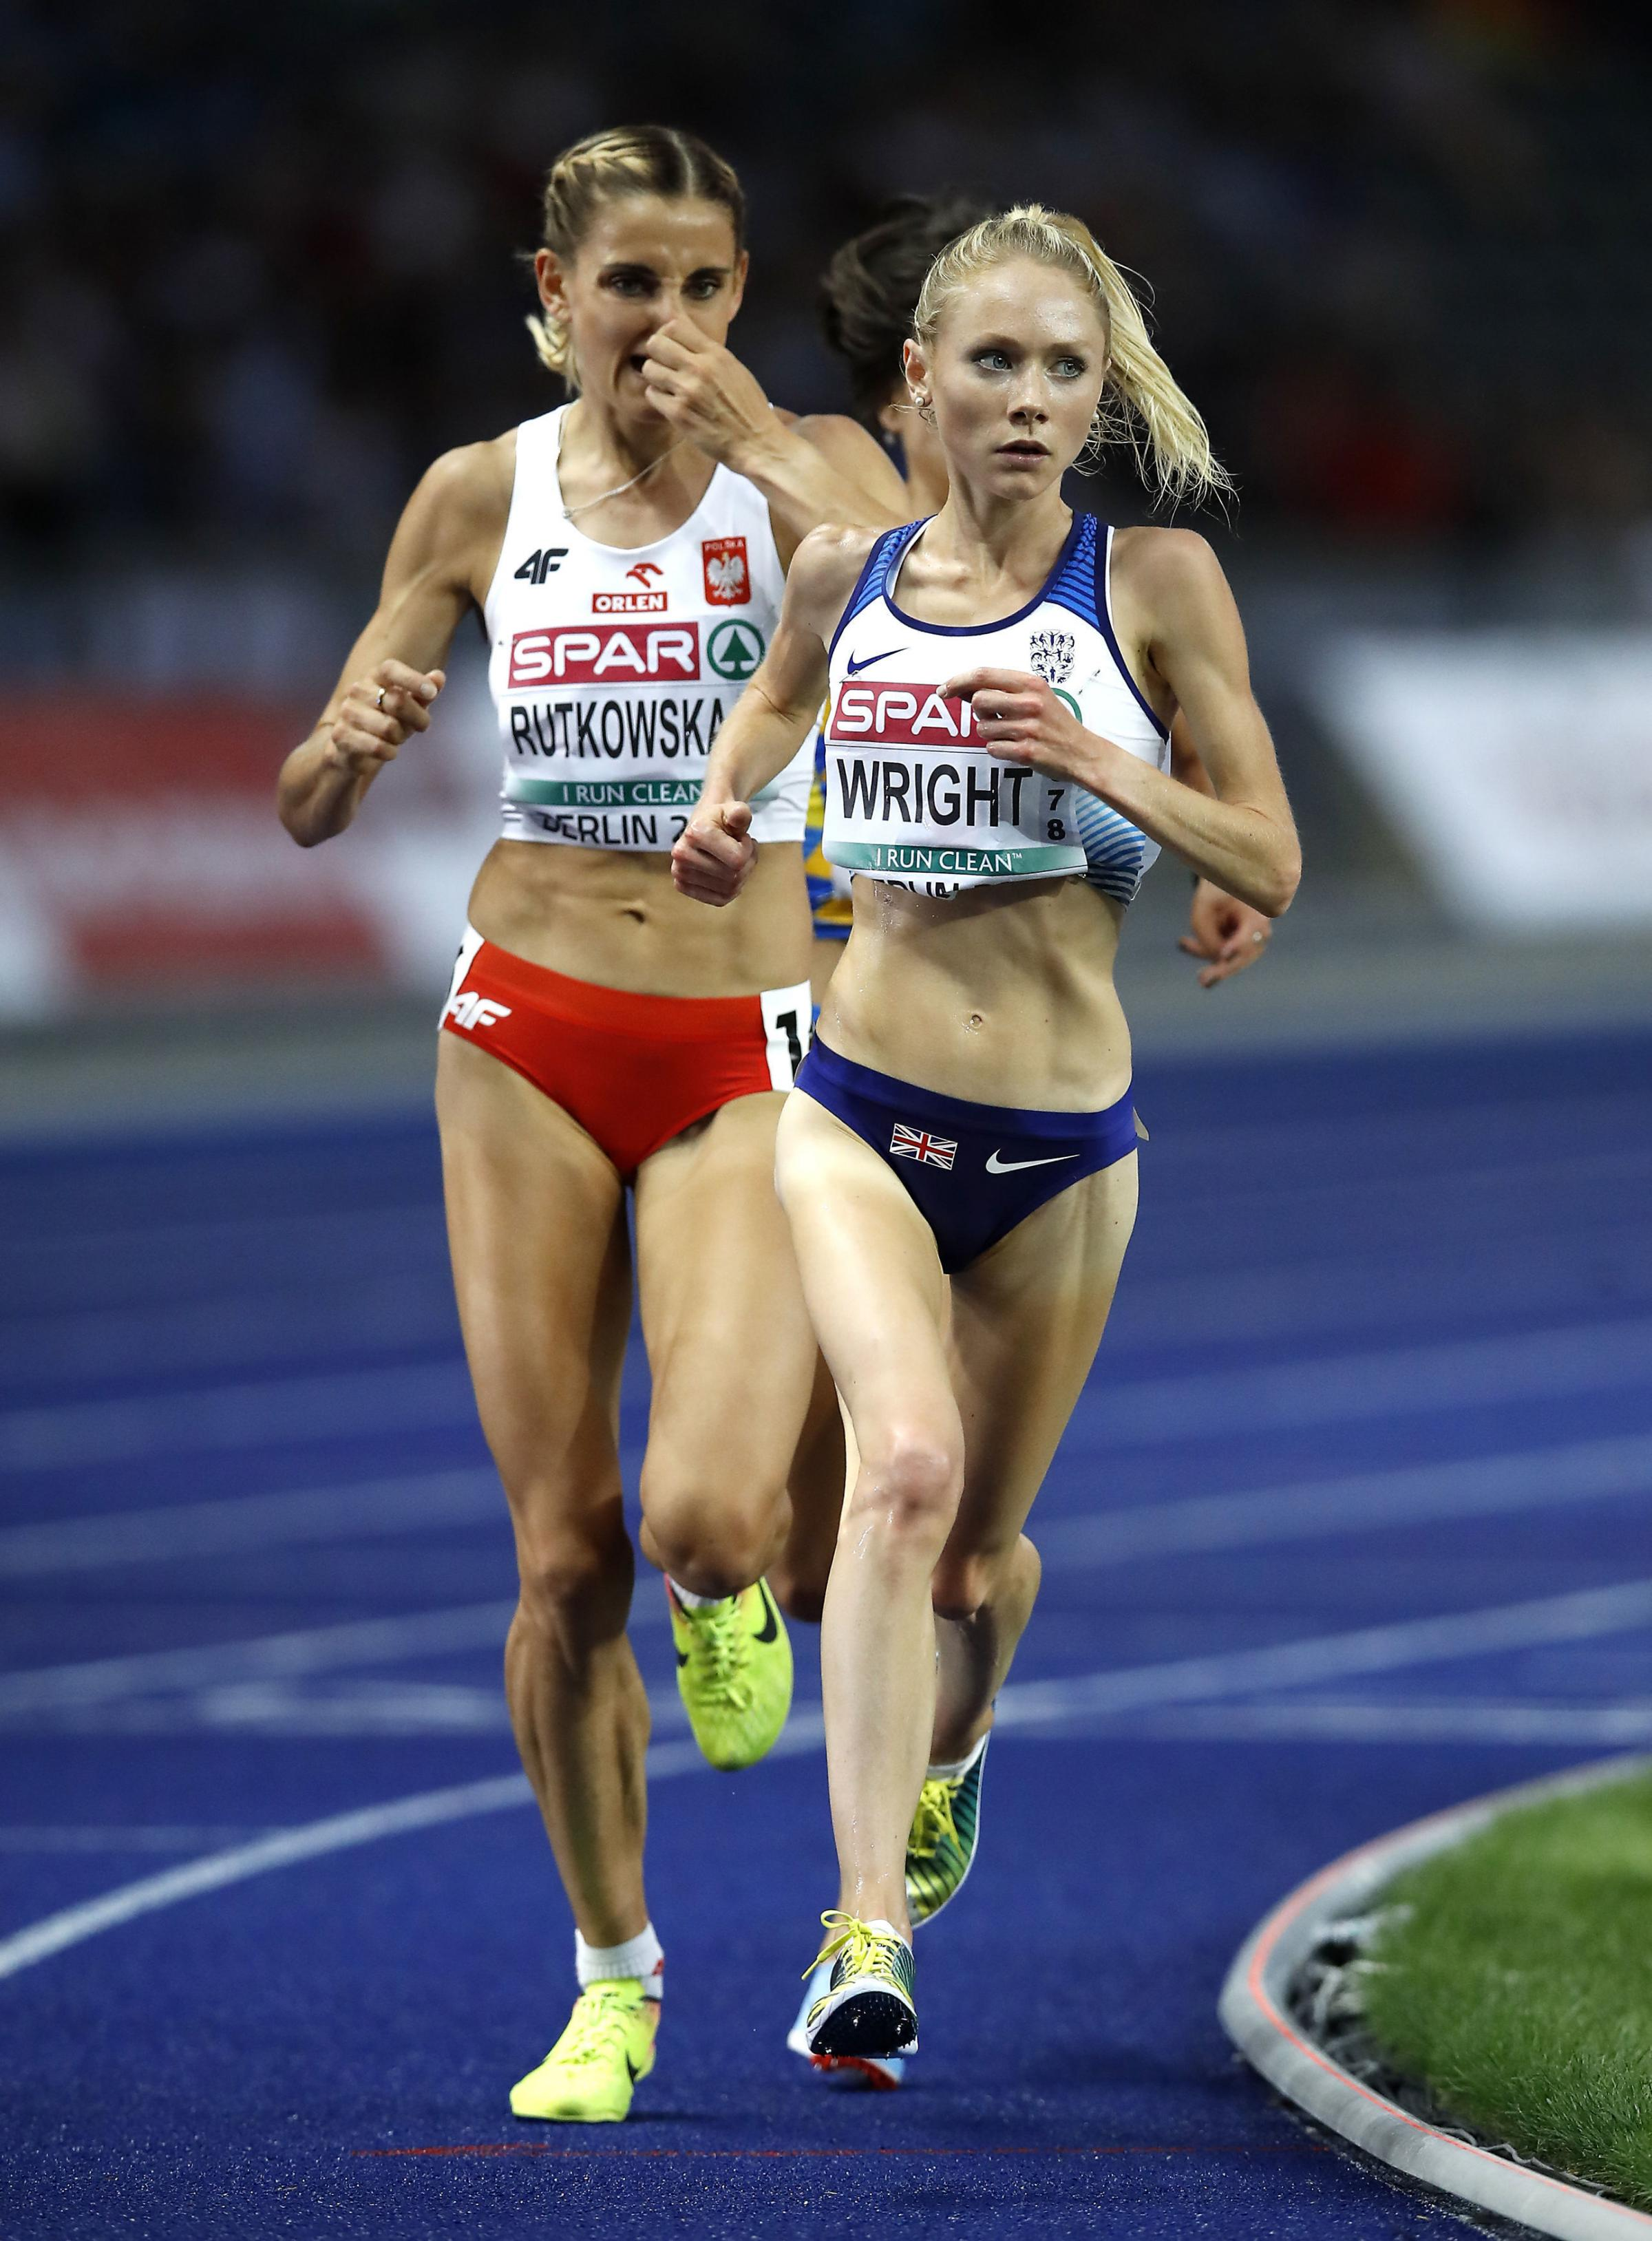 Alice Wright competes in the women's 10,000-metre final at the 2018 European Athletics Championships in Berlin. Picture: MARTIN RICKETT/PA WIRE